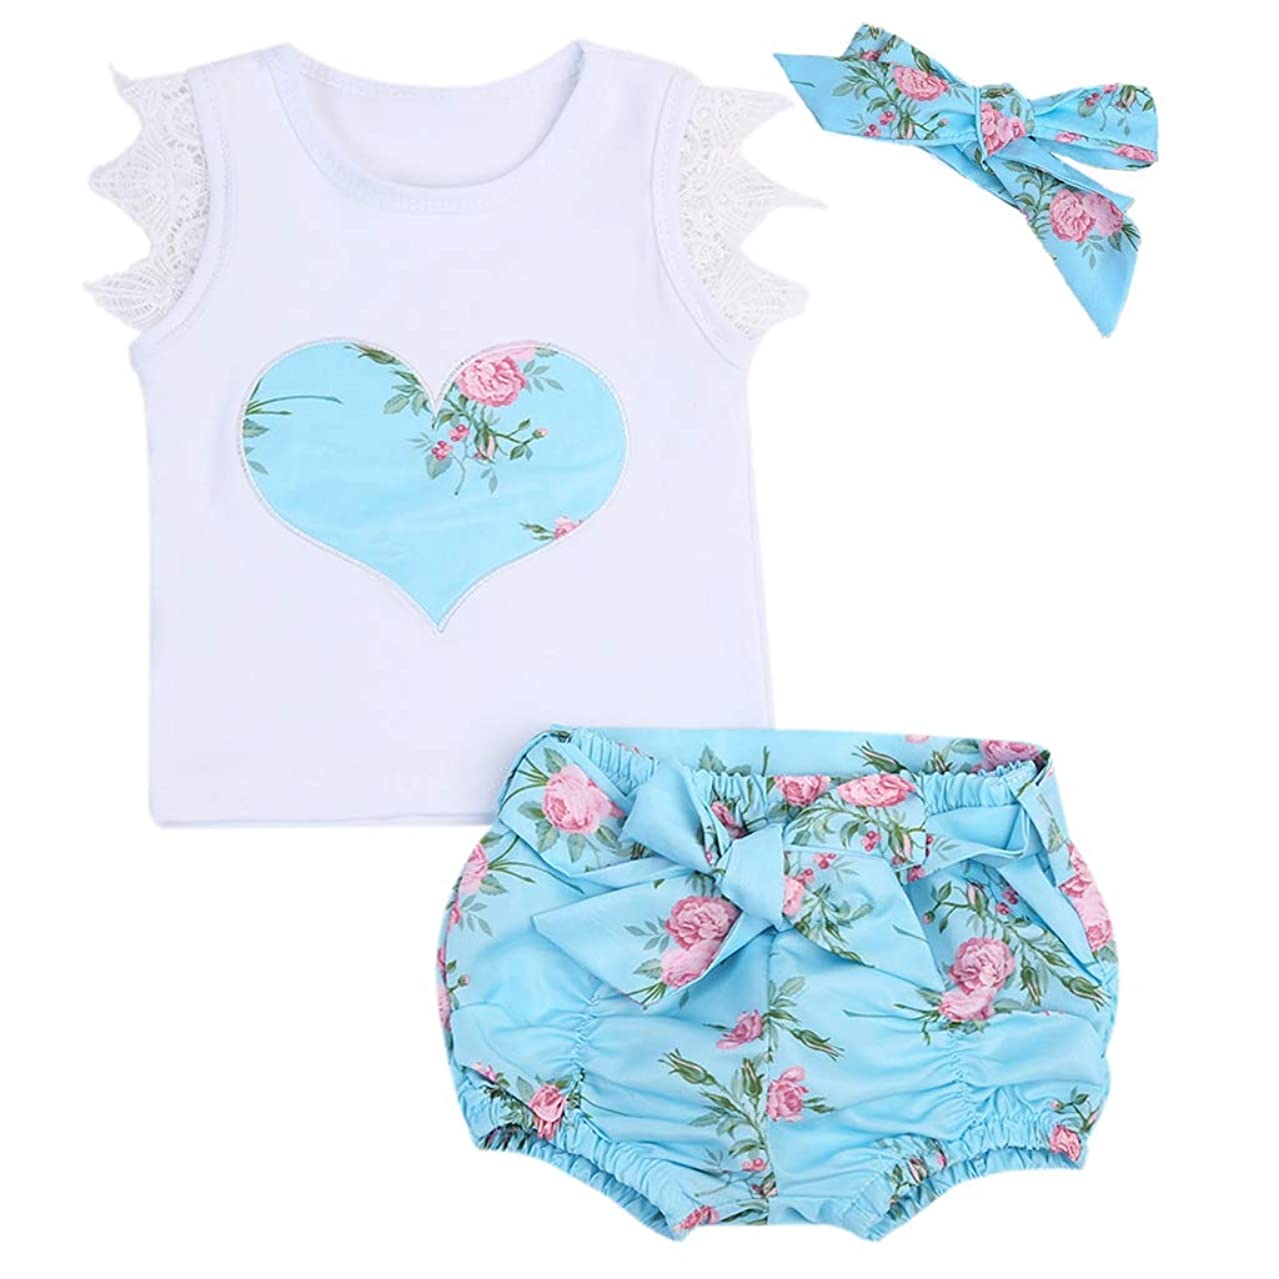 Lovely O-Neck Sleeveless Floral Toddler Baby Girls Outfits 3PS Clothes T-Shirt Tops+Shorts +Headband 0-3Y